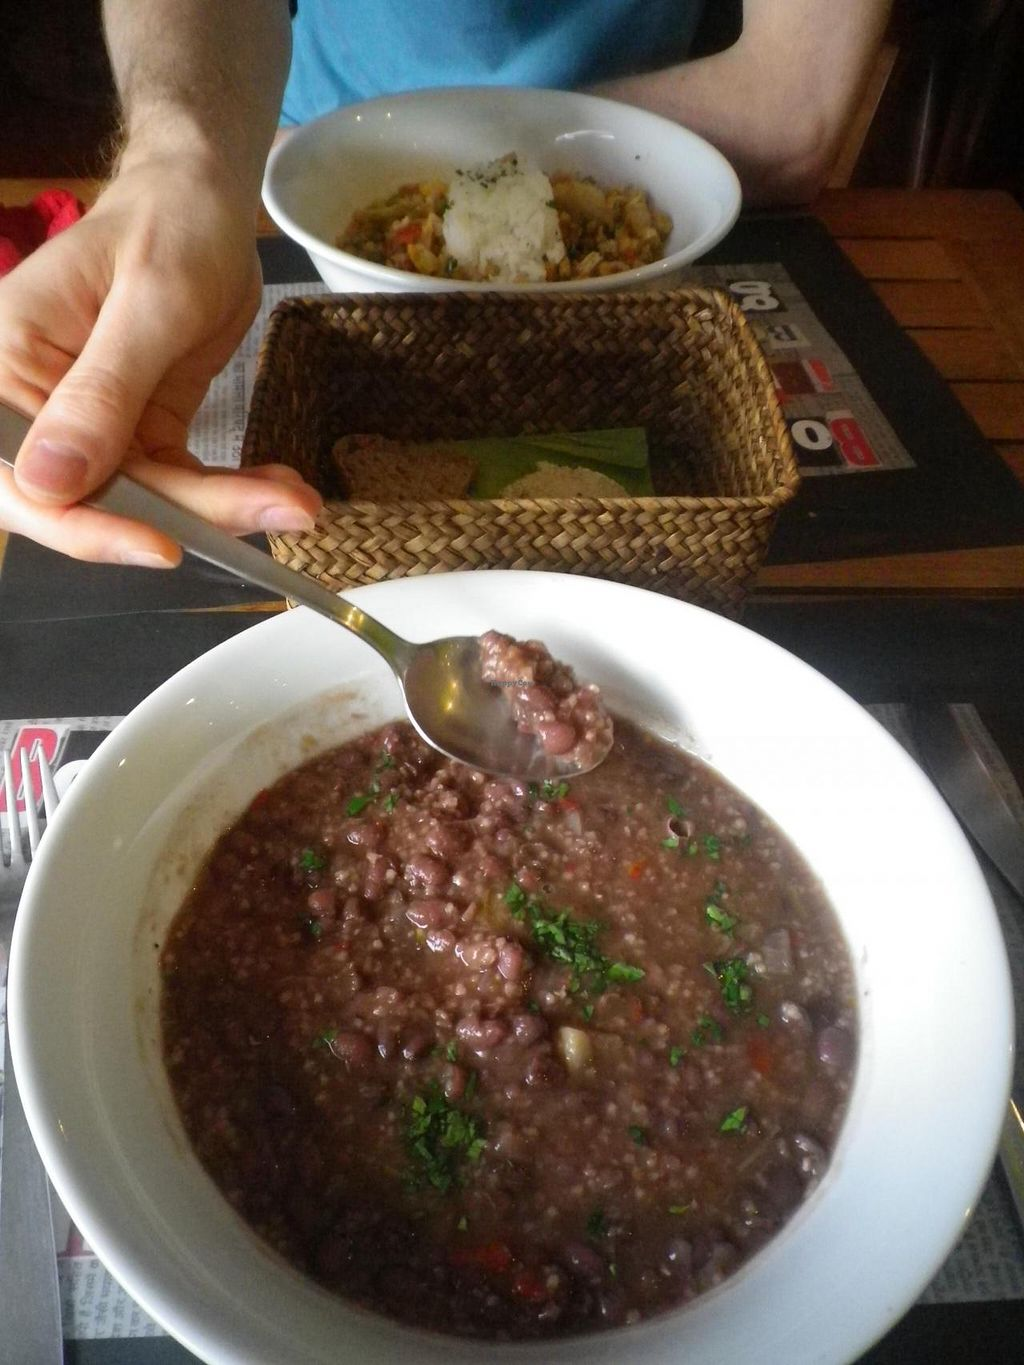 """Photo of Sukha Espai Vegetarian  by <a href=""""/members/profile/Becky%20Louise"""">Becky Louise</a> <br/>Falvoursome bean + veg vegan dish with herbs. The flavours just POP <br/> May 18, 2014  - <a href='/contact/abuse/image/38753/70237'>Report</a>"""